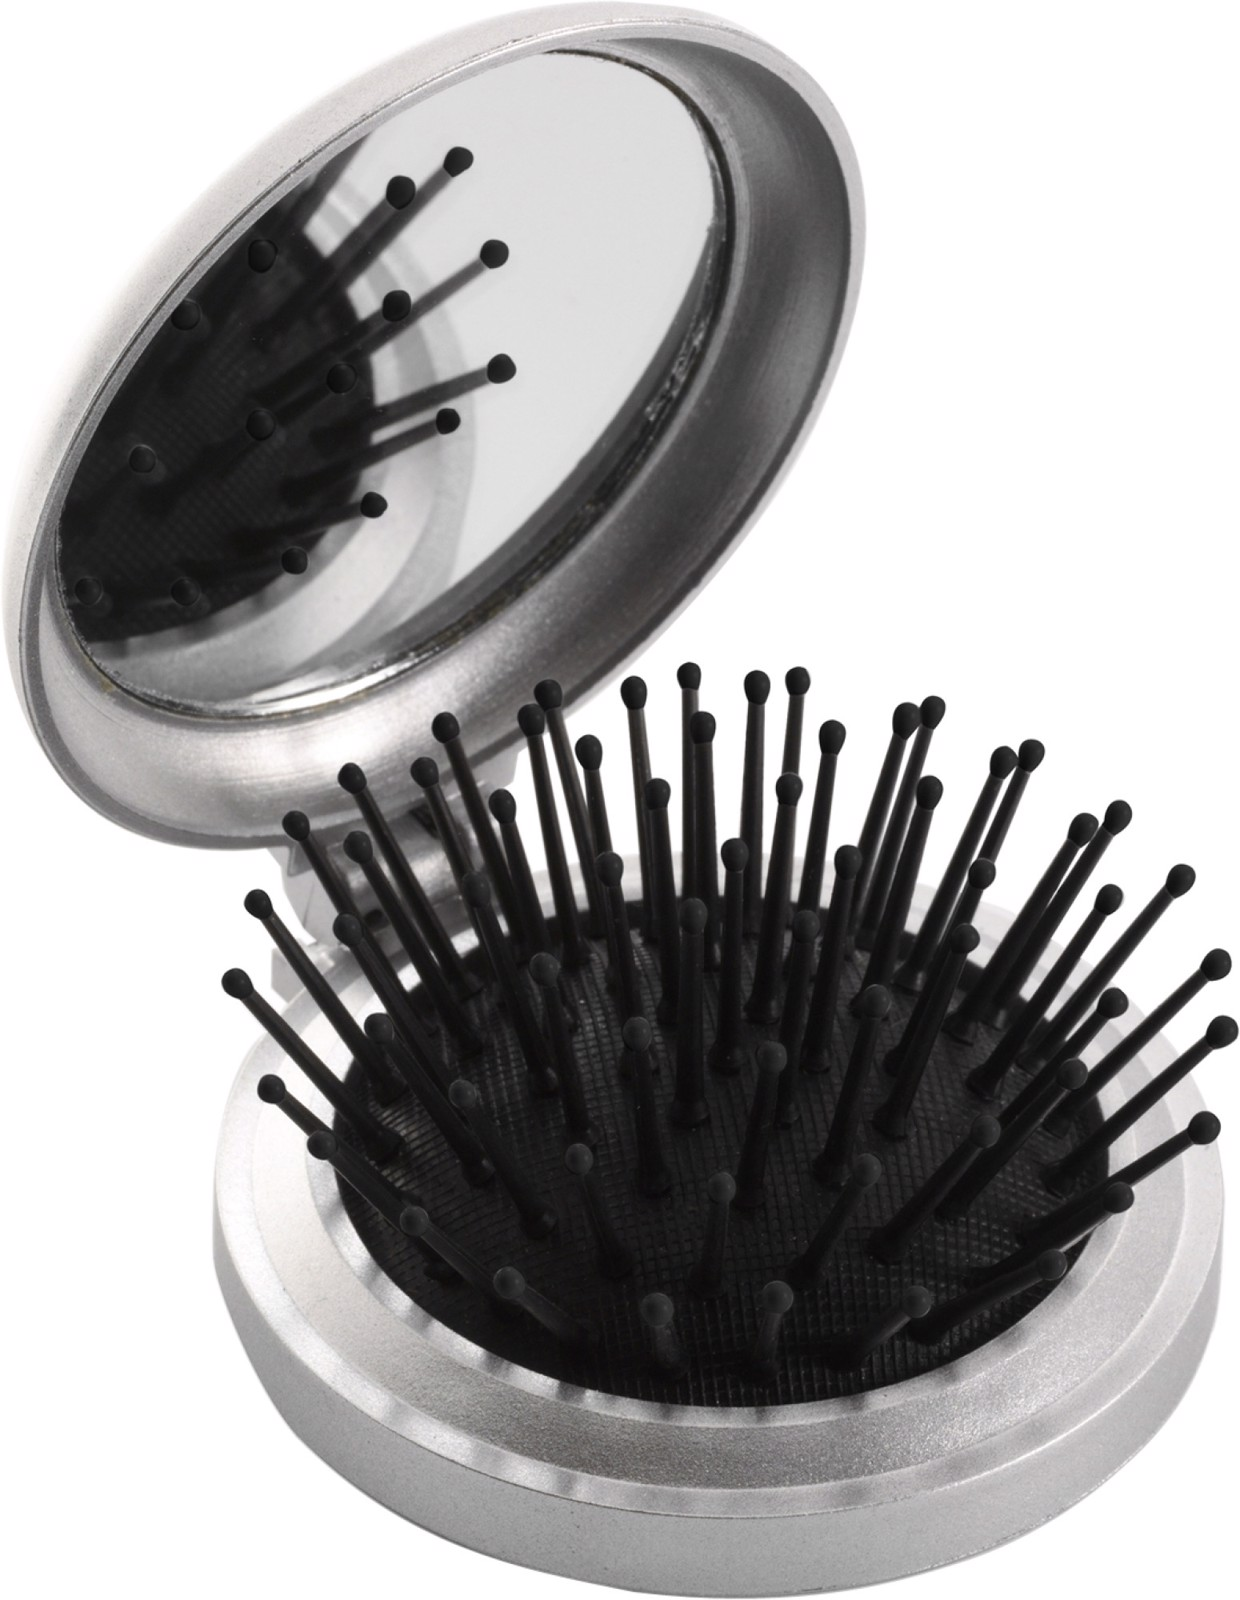 ABS pocket mirror with brush